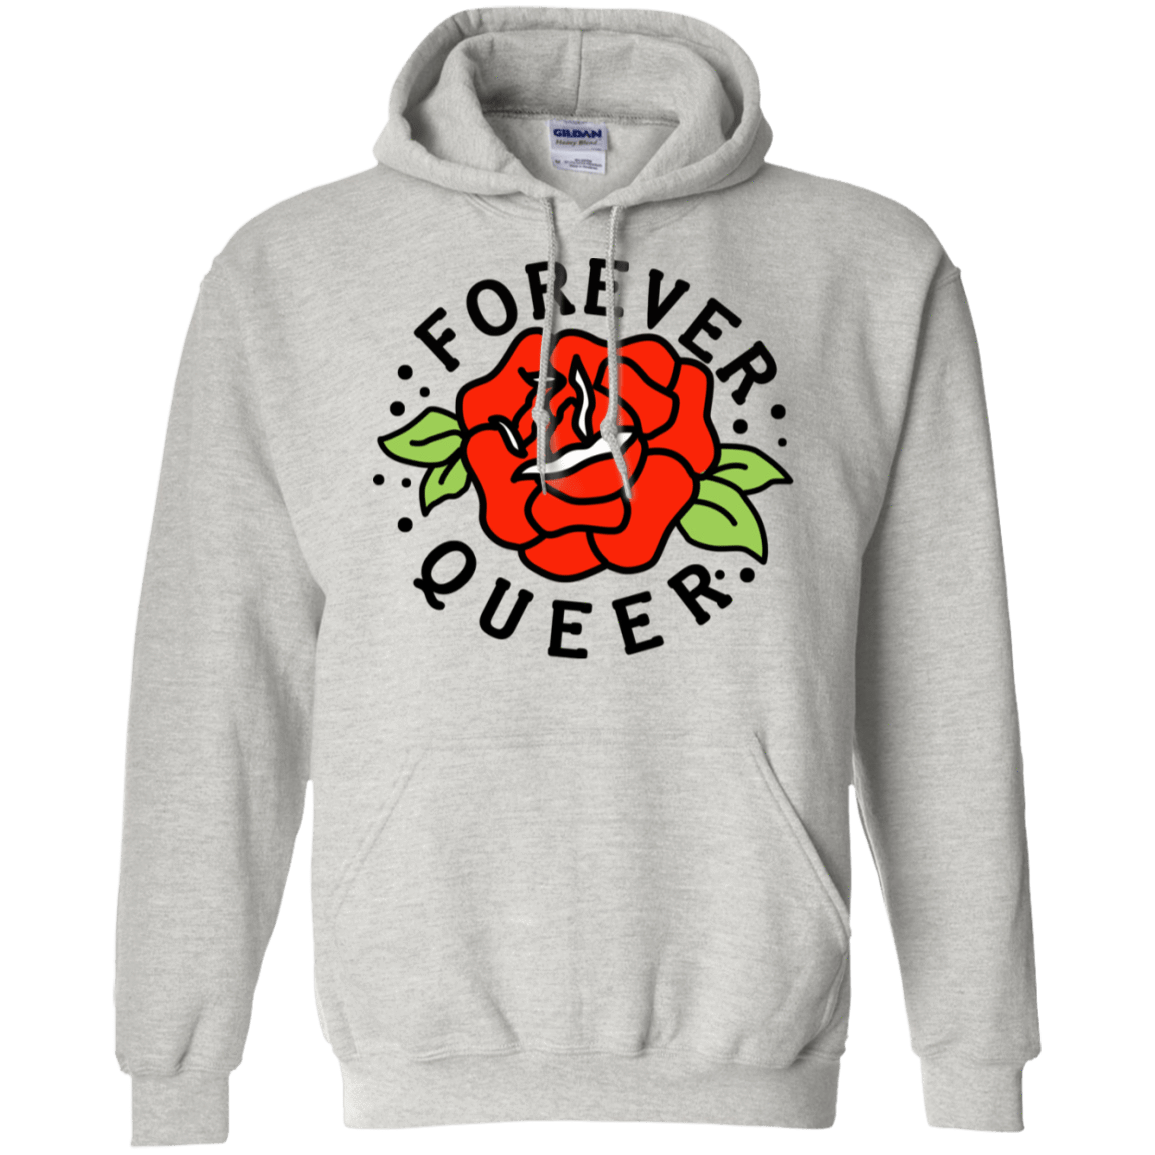 Forever Queer Rose 541-4748-73547903-23071 - Tee Ript